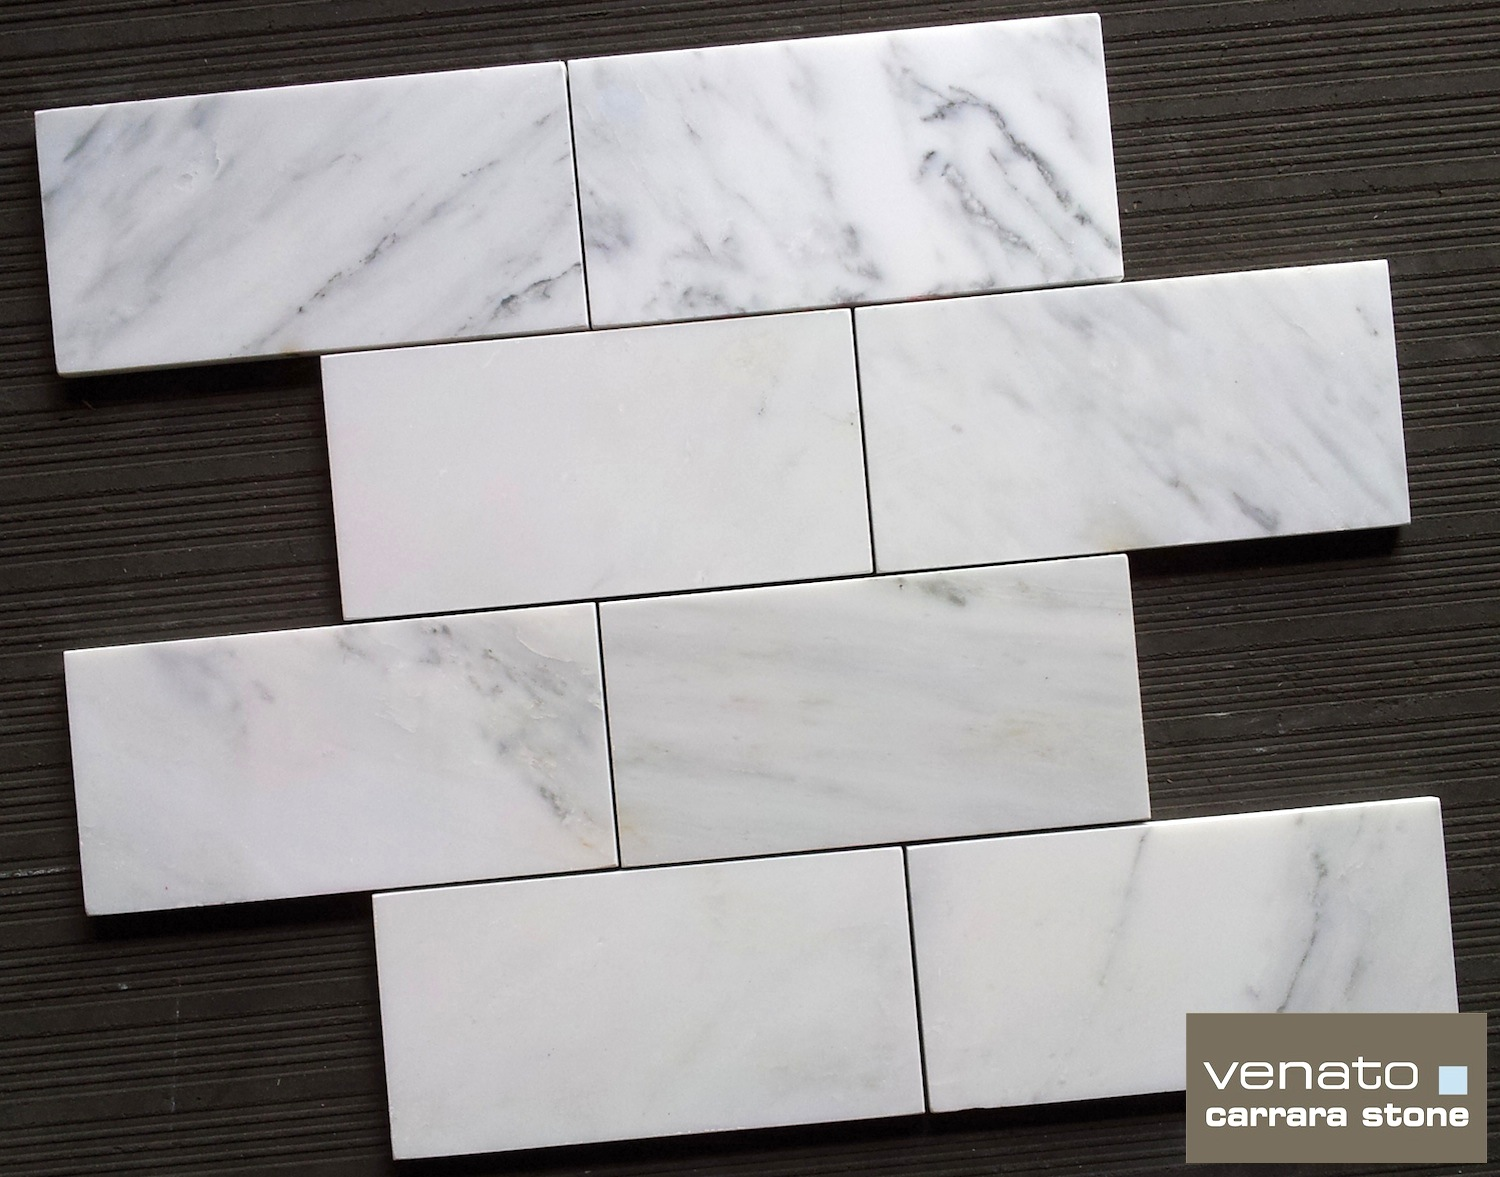 2013 the builder depot blog page 7 carrara venato 48 subway tile dailygadgetfo Choice Image